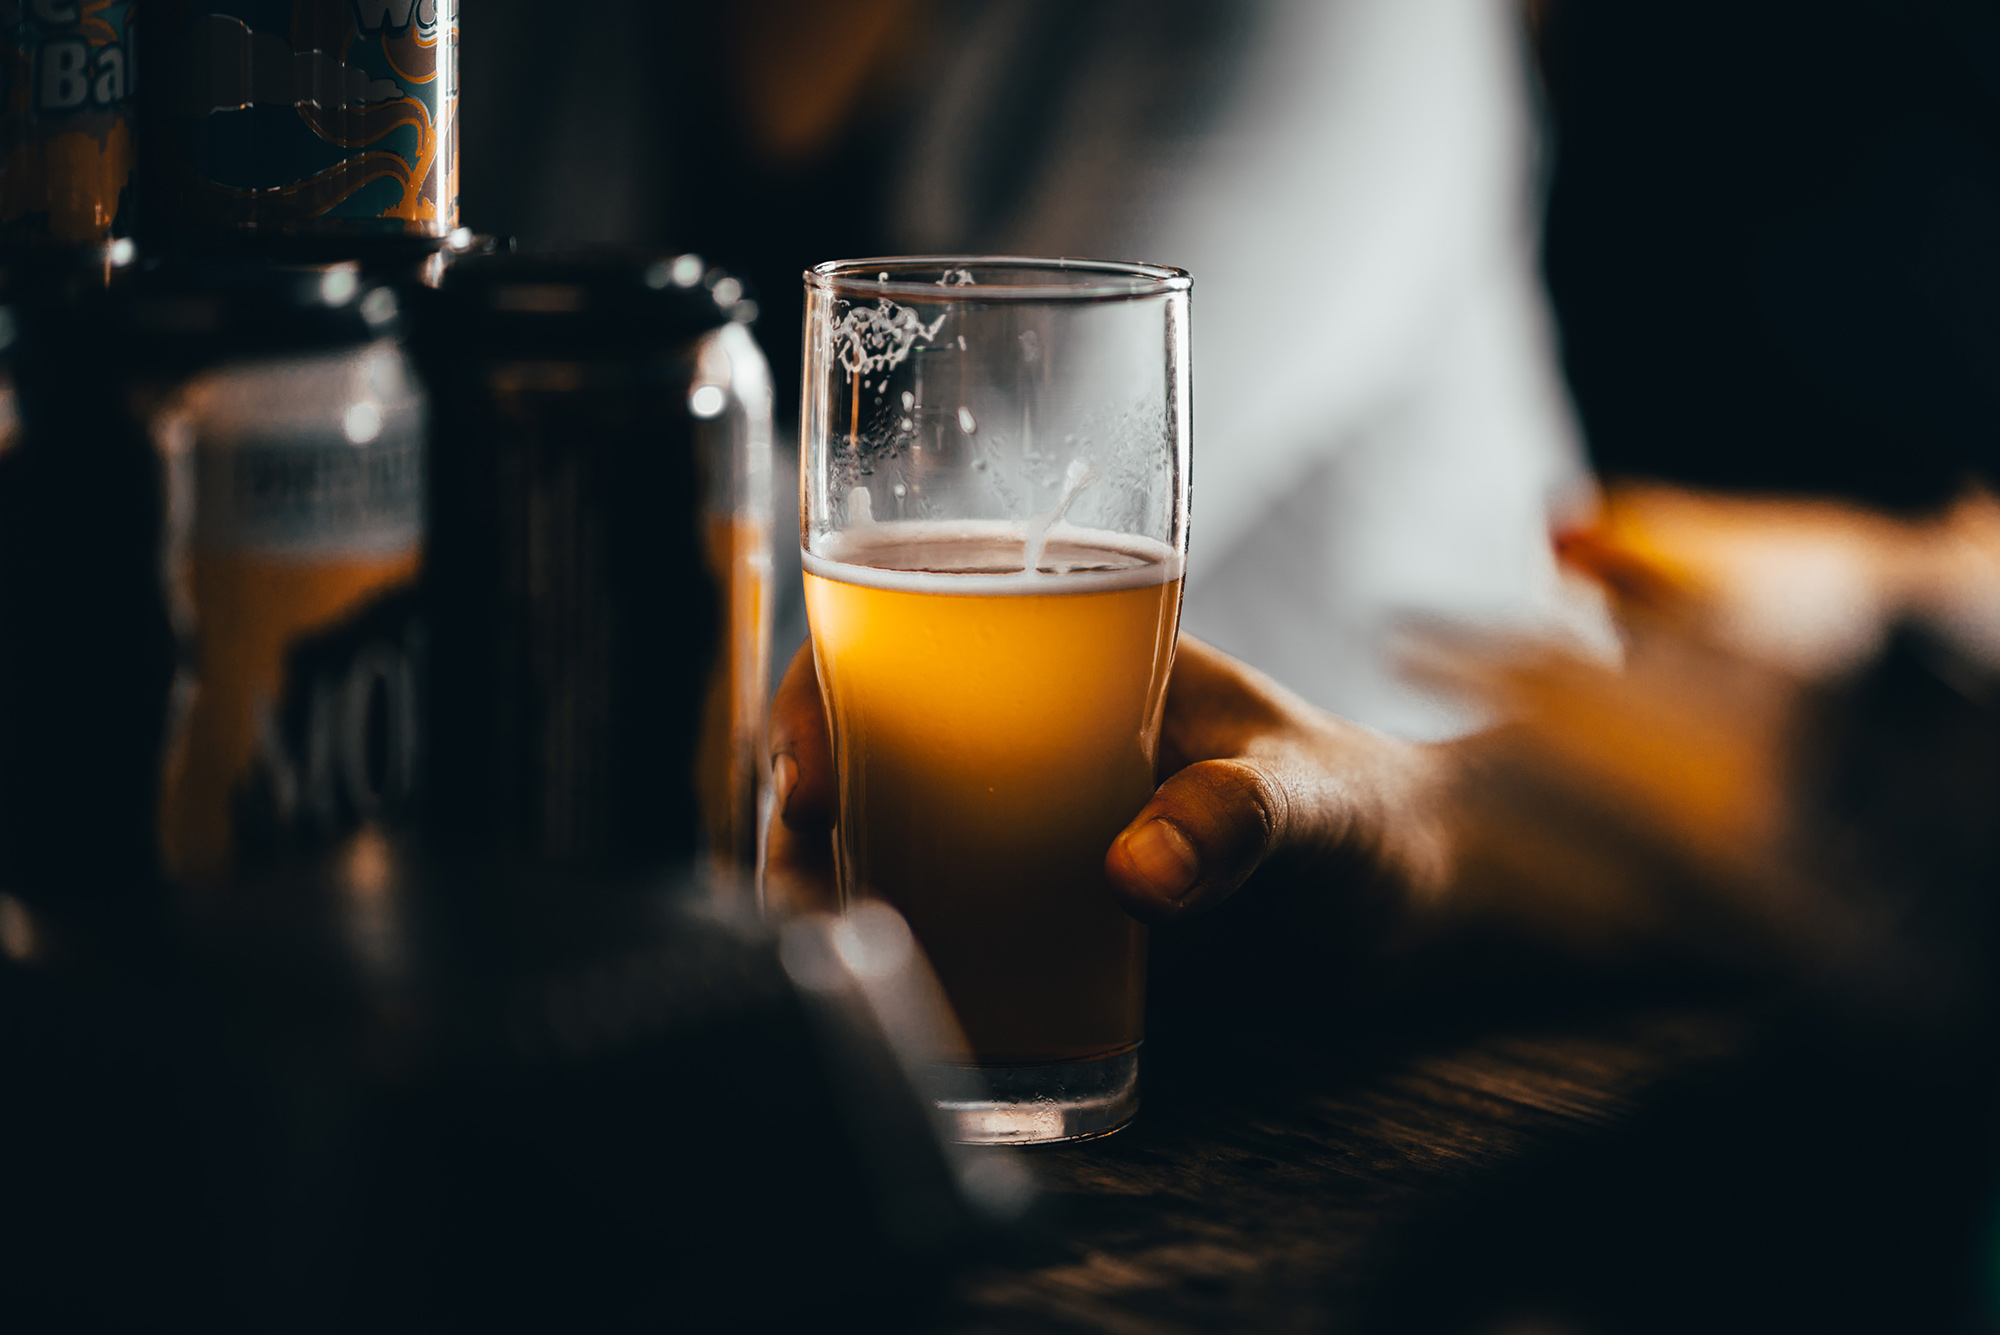 Photo of a hand holding beer; the beer and glass are in the light, while the background is blurry but resembles a bar.